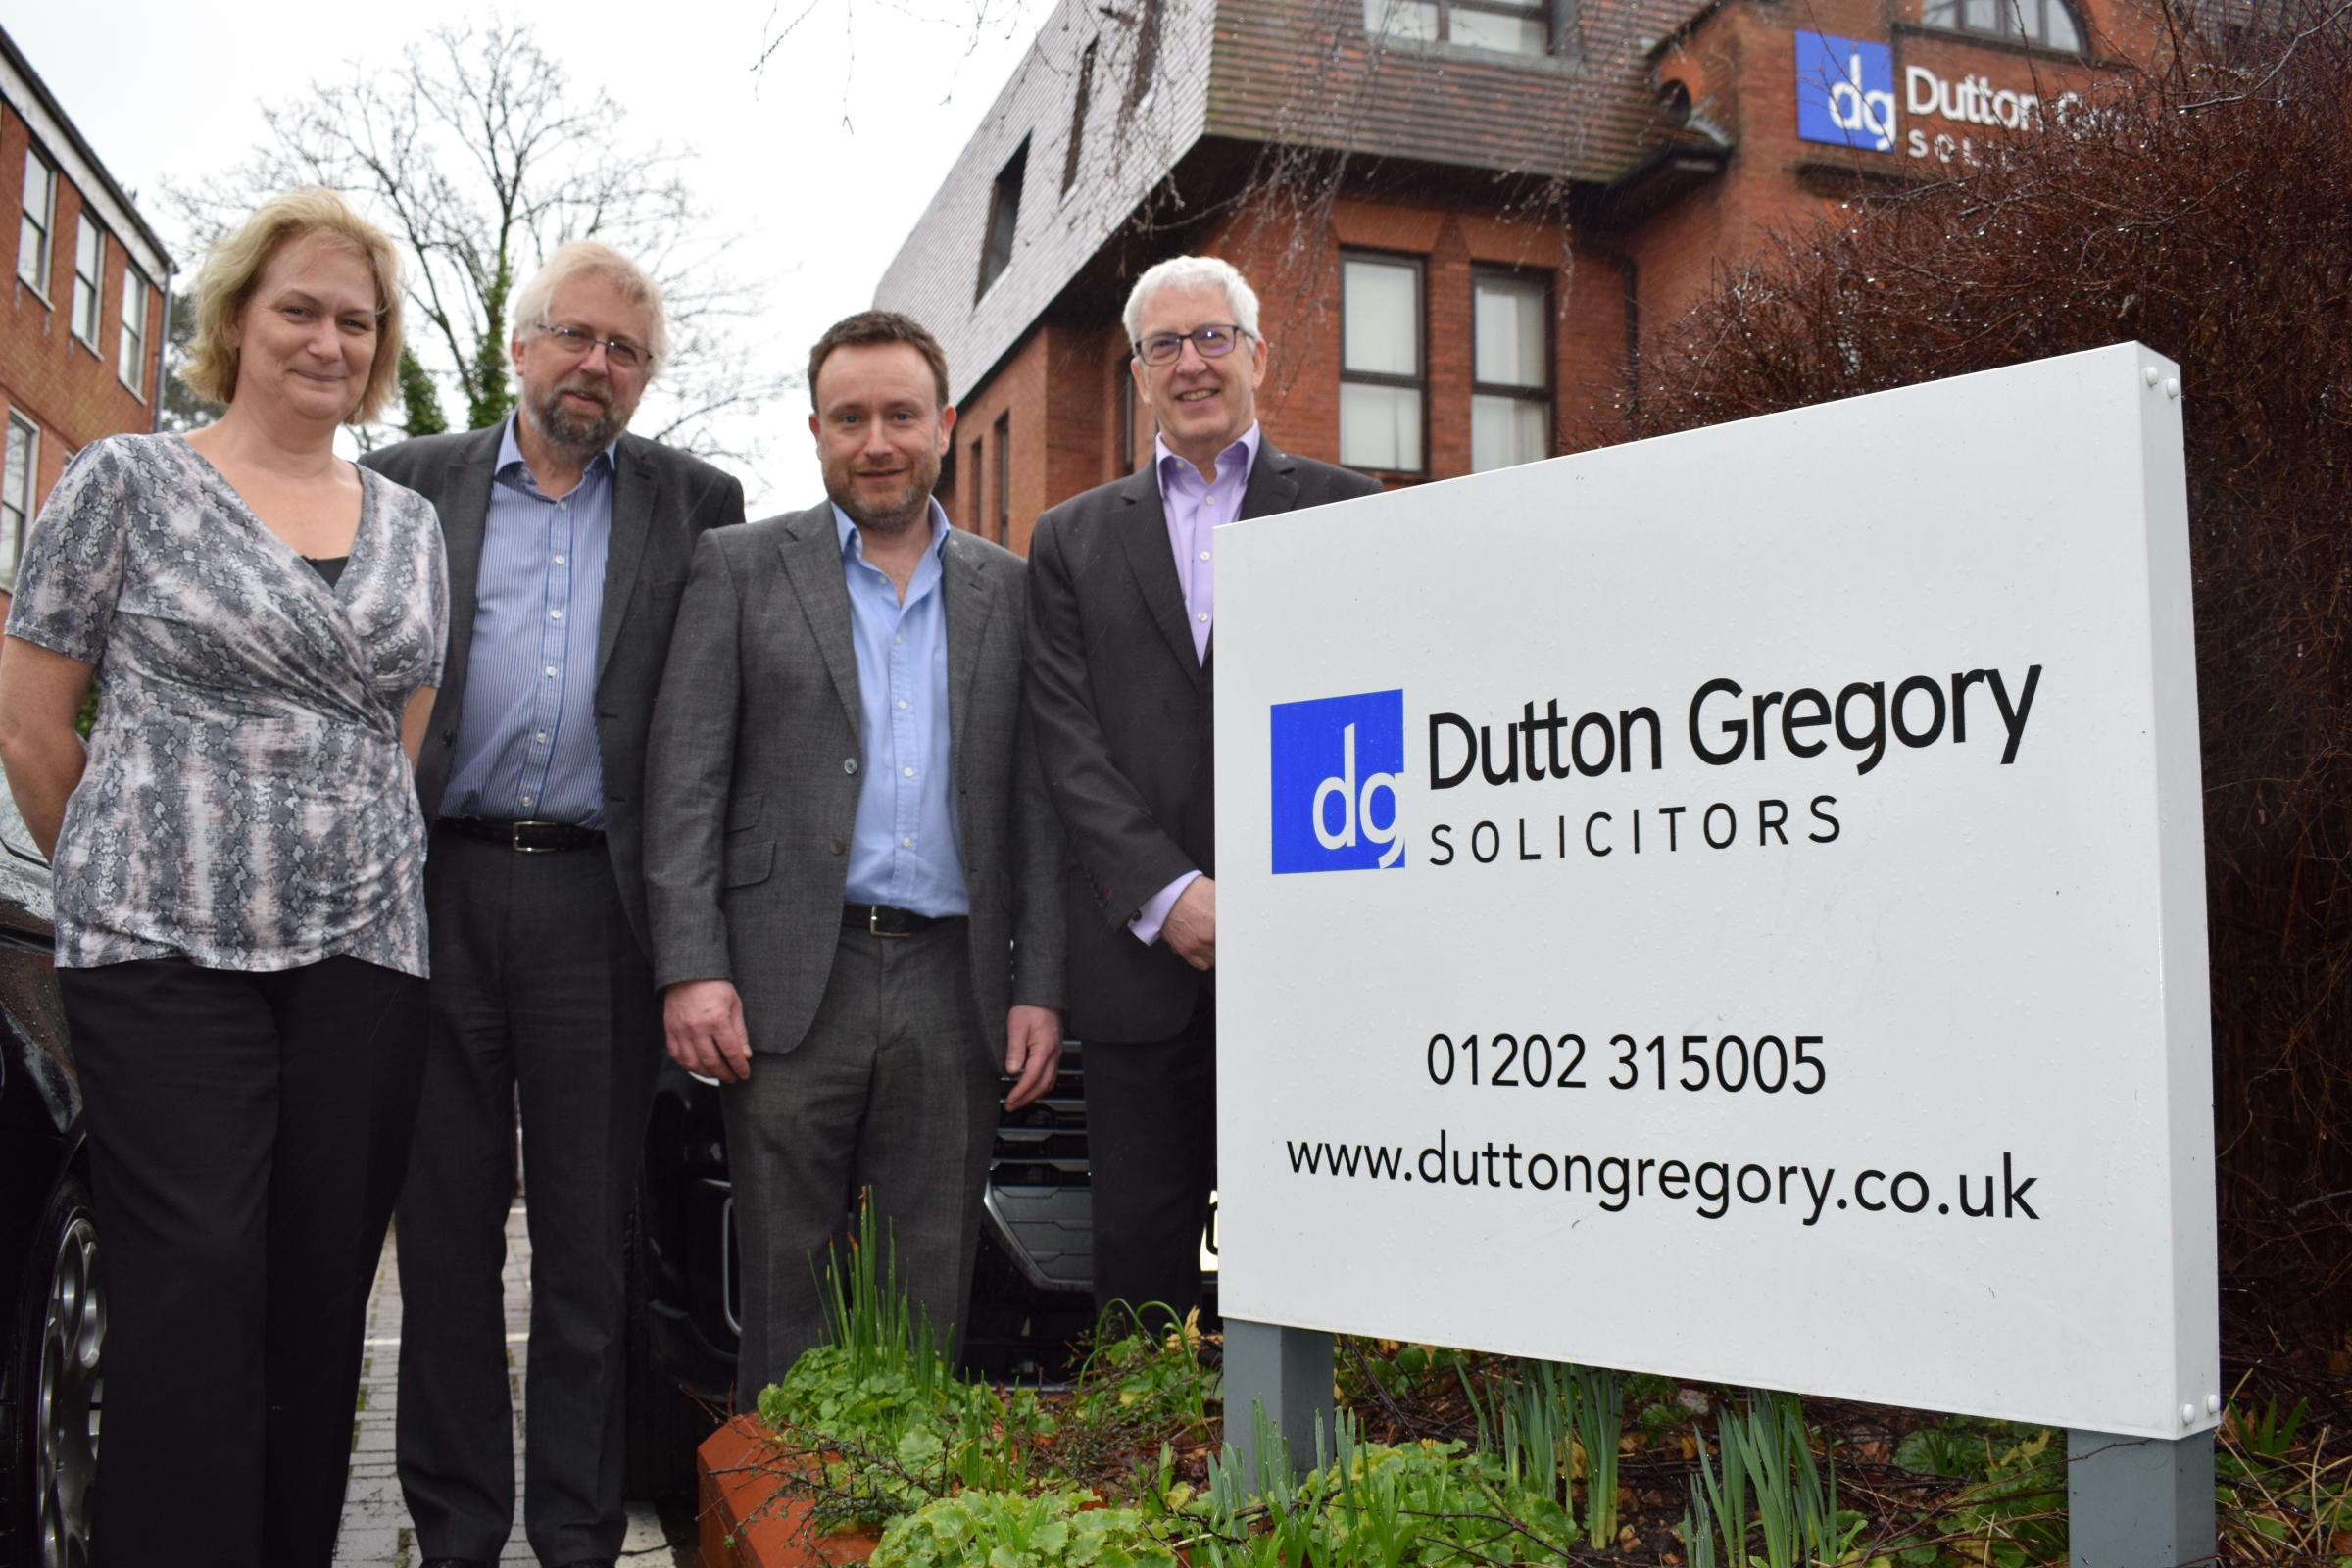 Staff from Duttons and Turners prepare for their merger in March